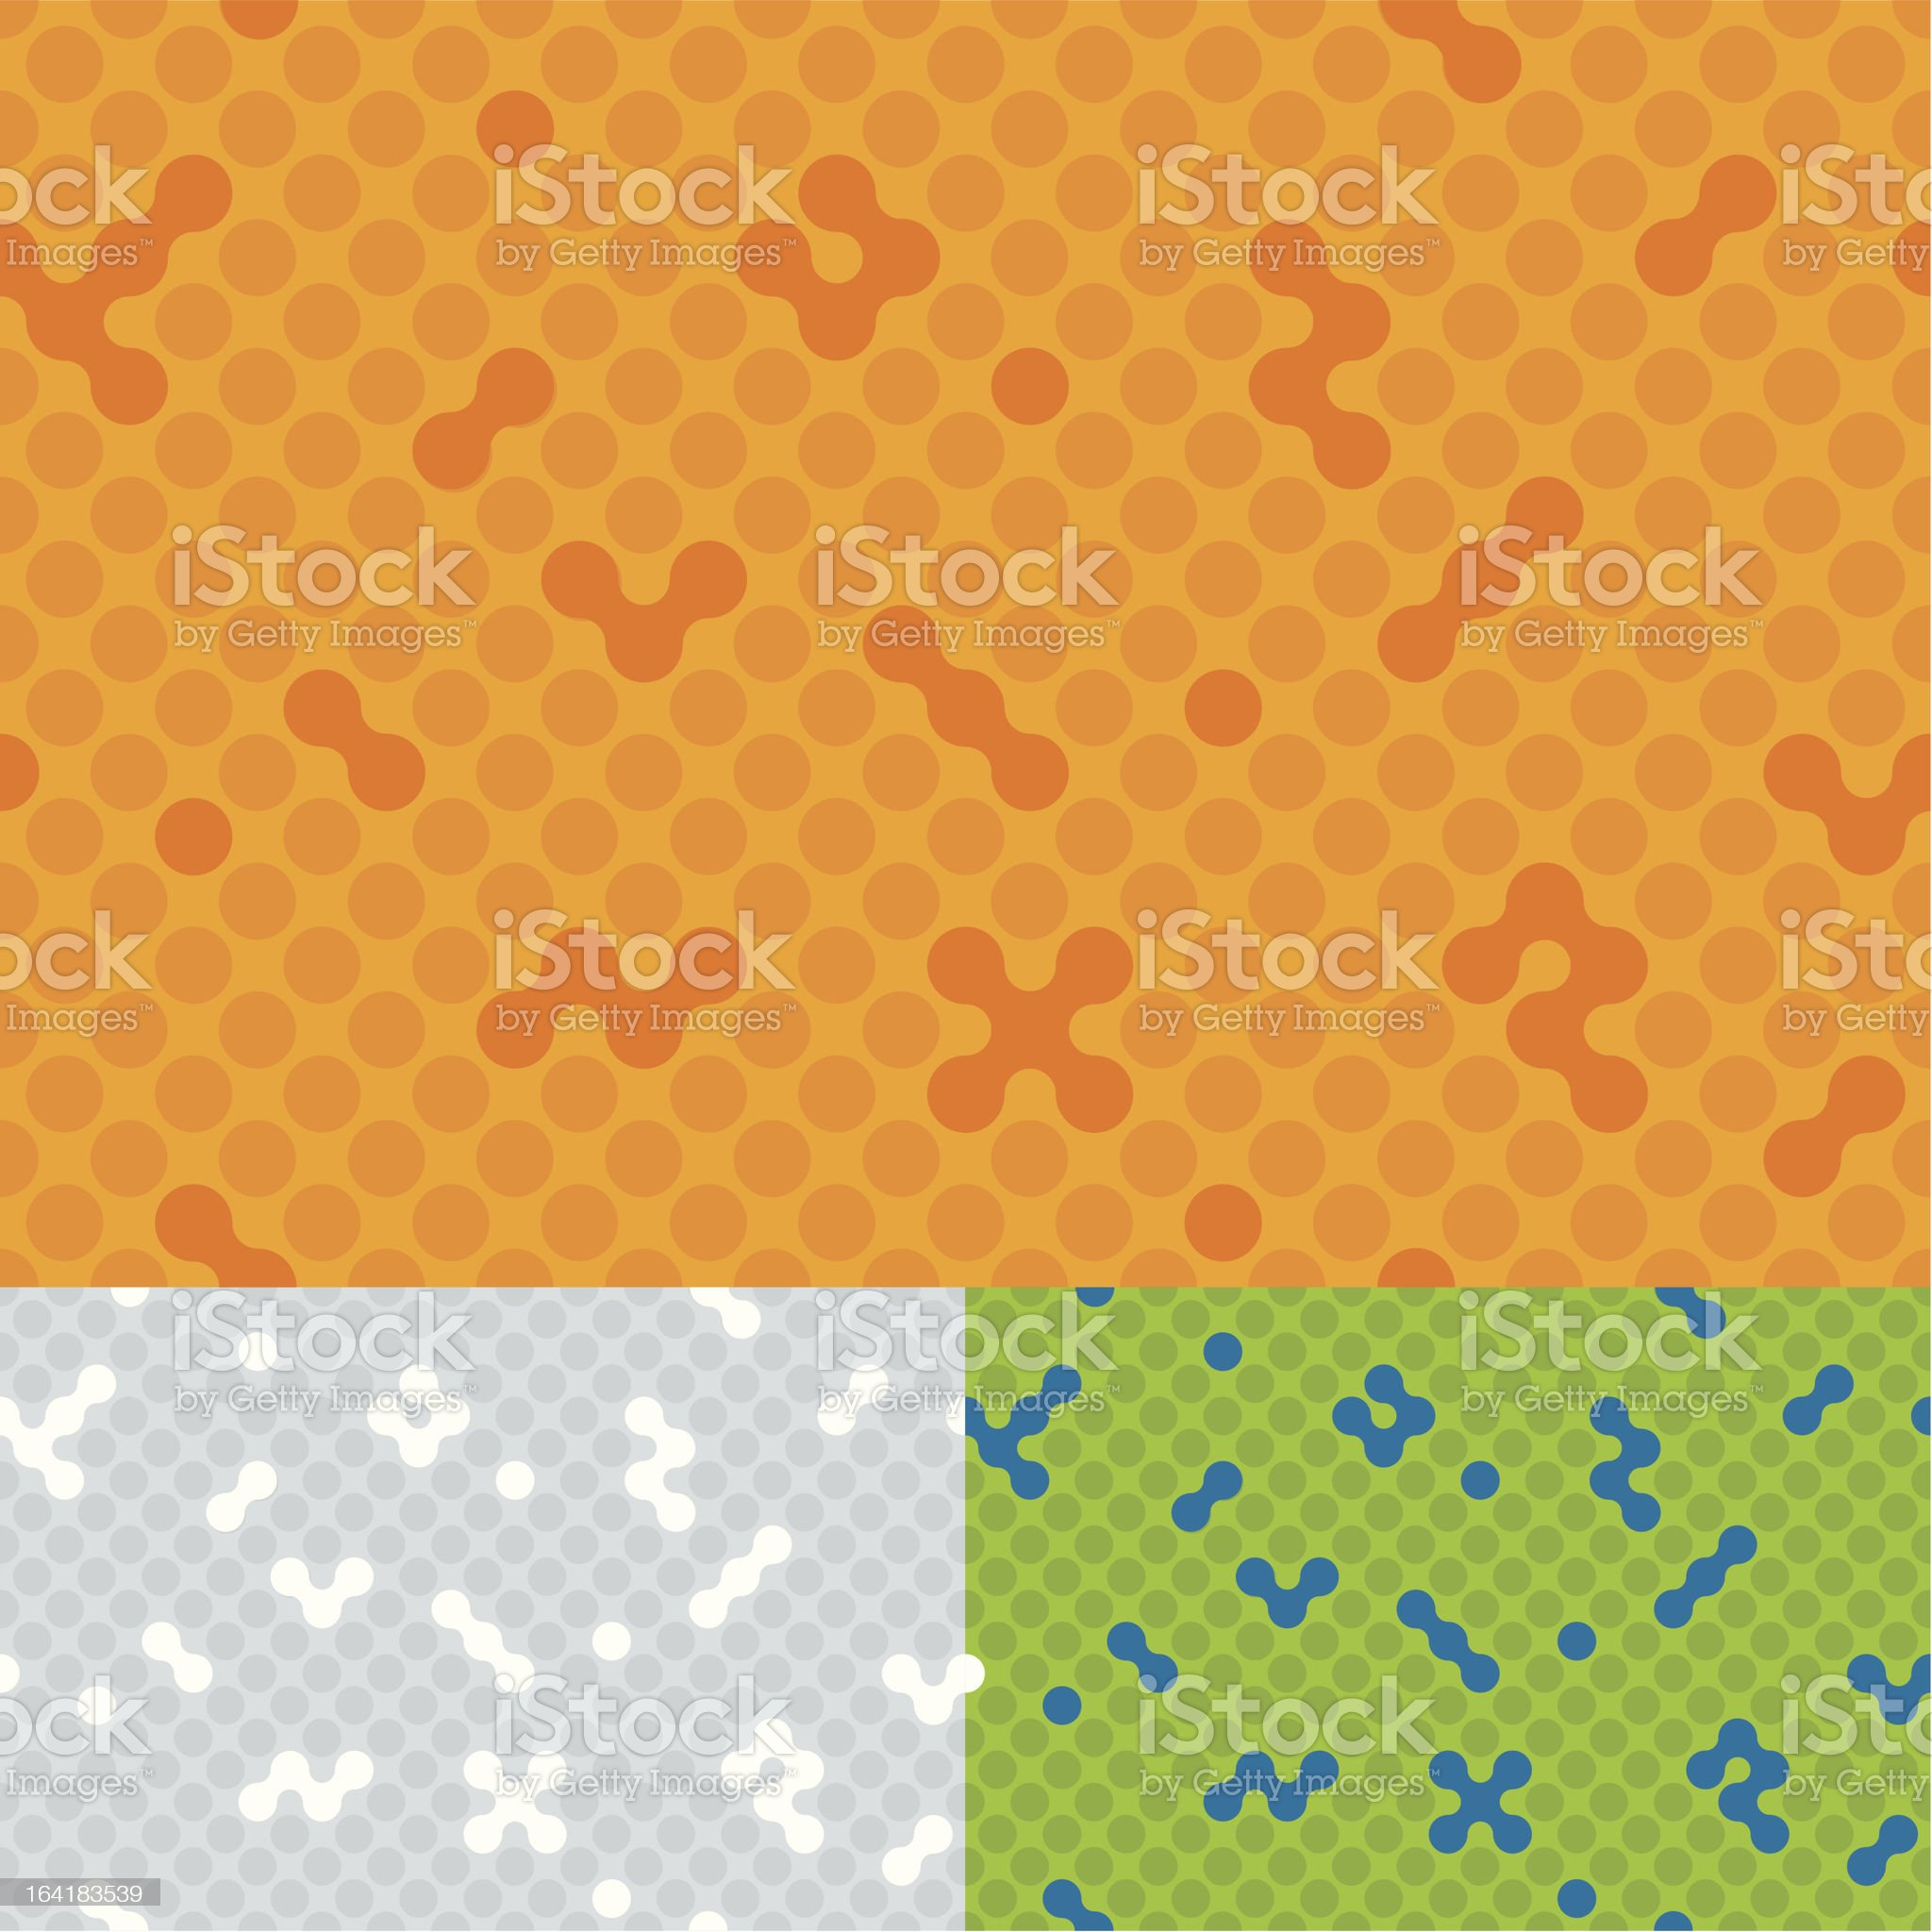 Seamless spot background (vector) royalty-free stock vector art